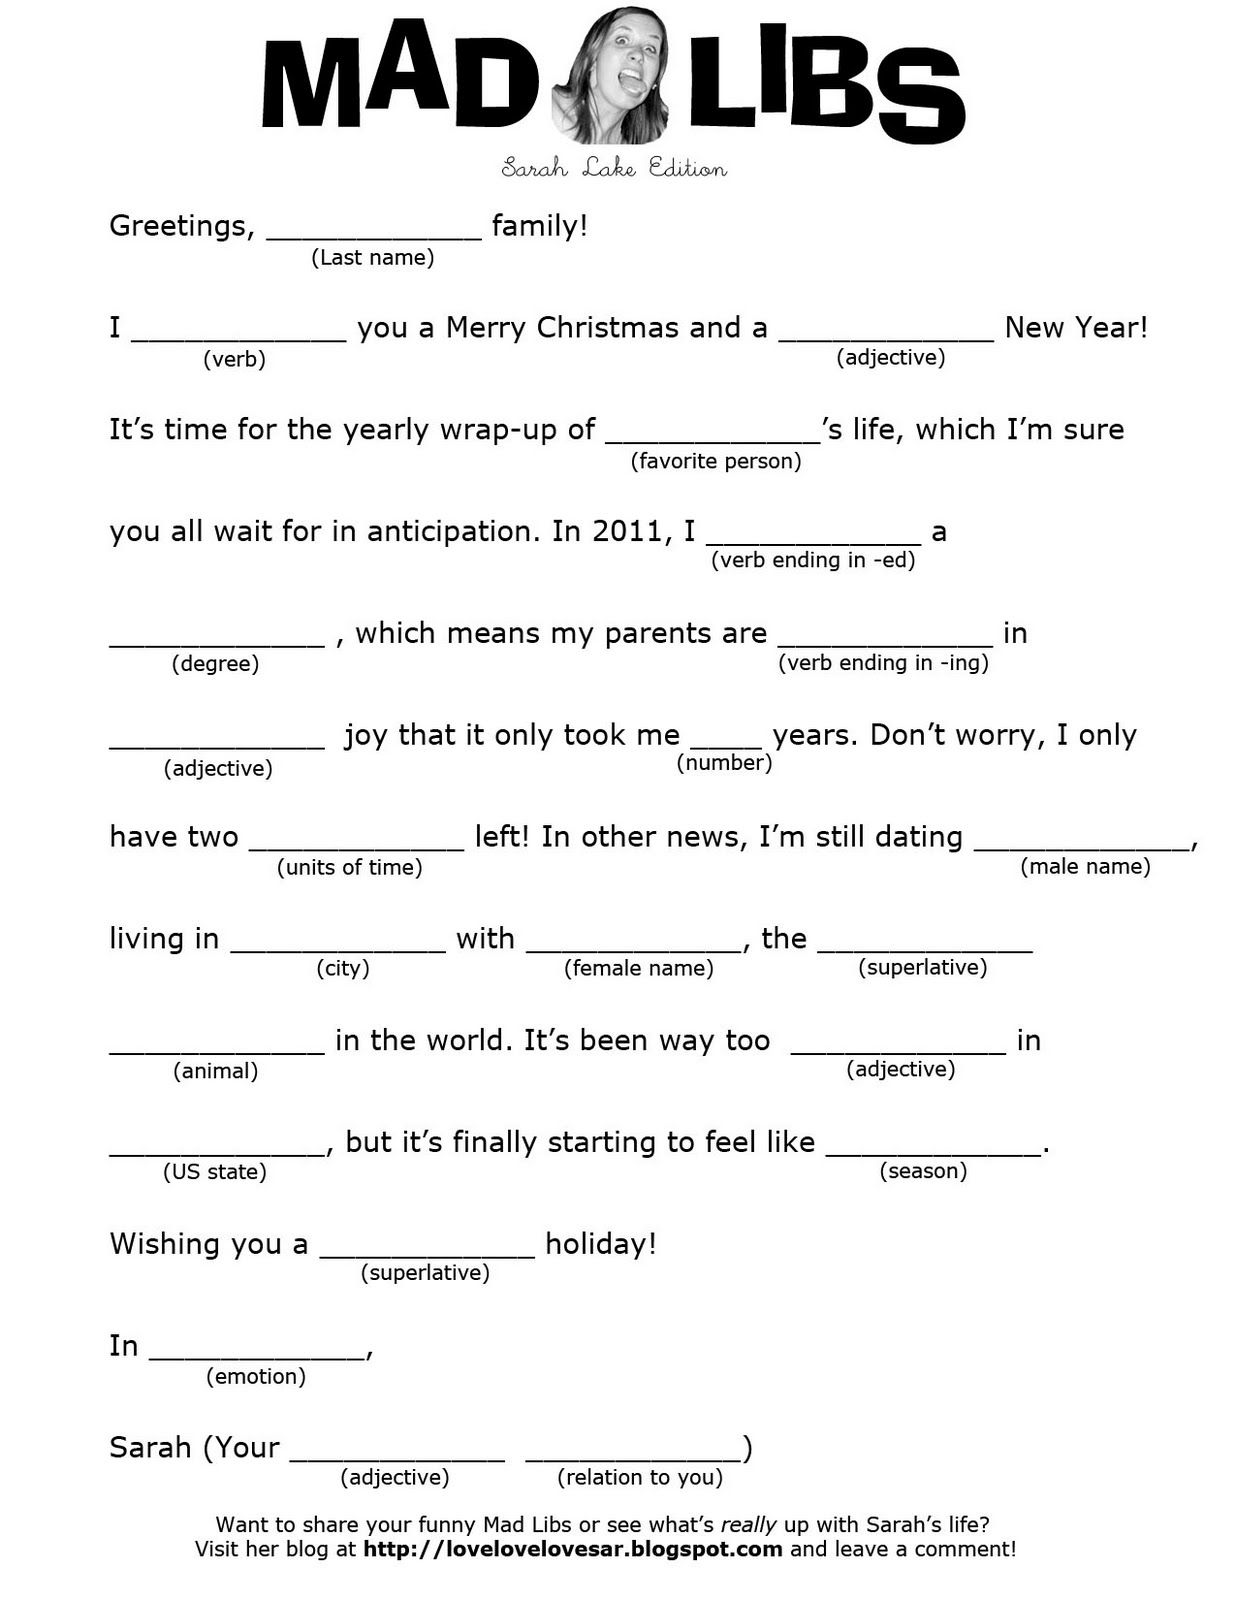 Worksheets Mad Libs Worksheets mad libs christmas card via life of love christmasy pinterest love